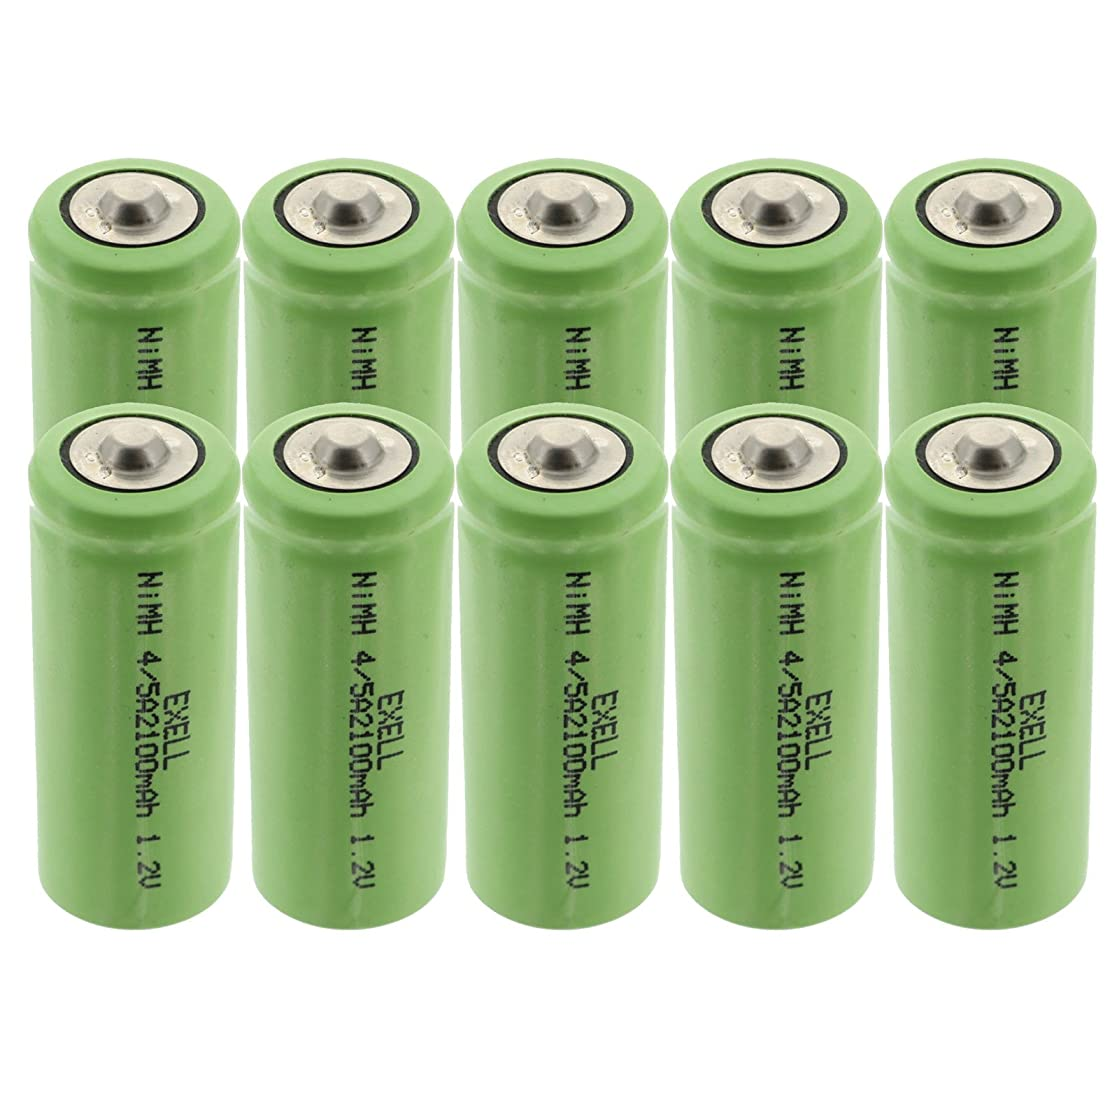 10x 1.2V 4/5A NiMH Rechargeable Button Top Batteries For radio controlled devices electric tools